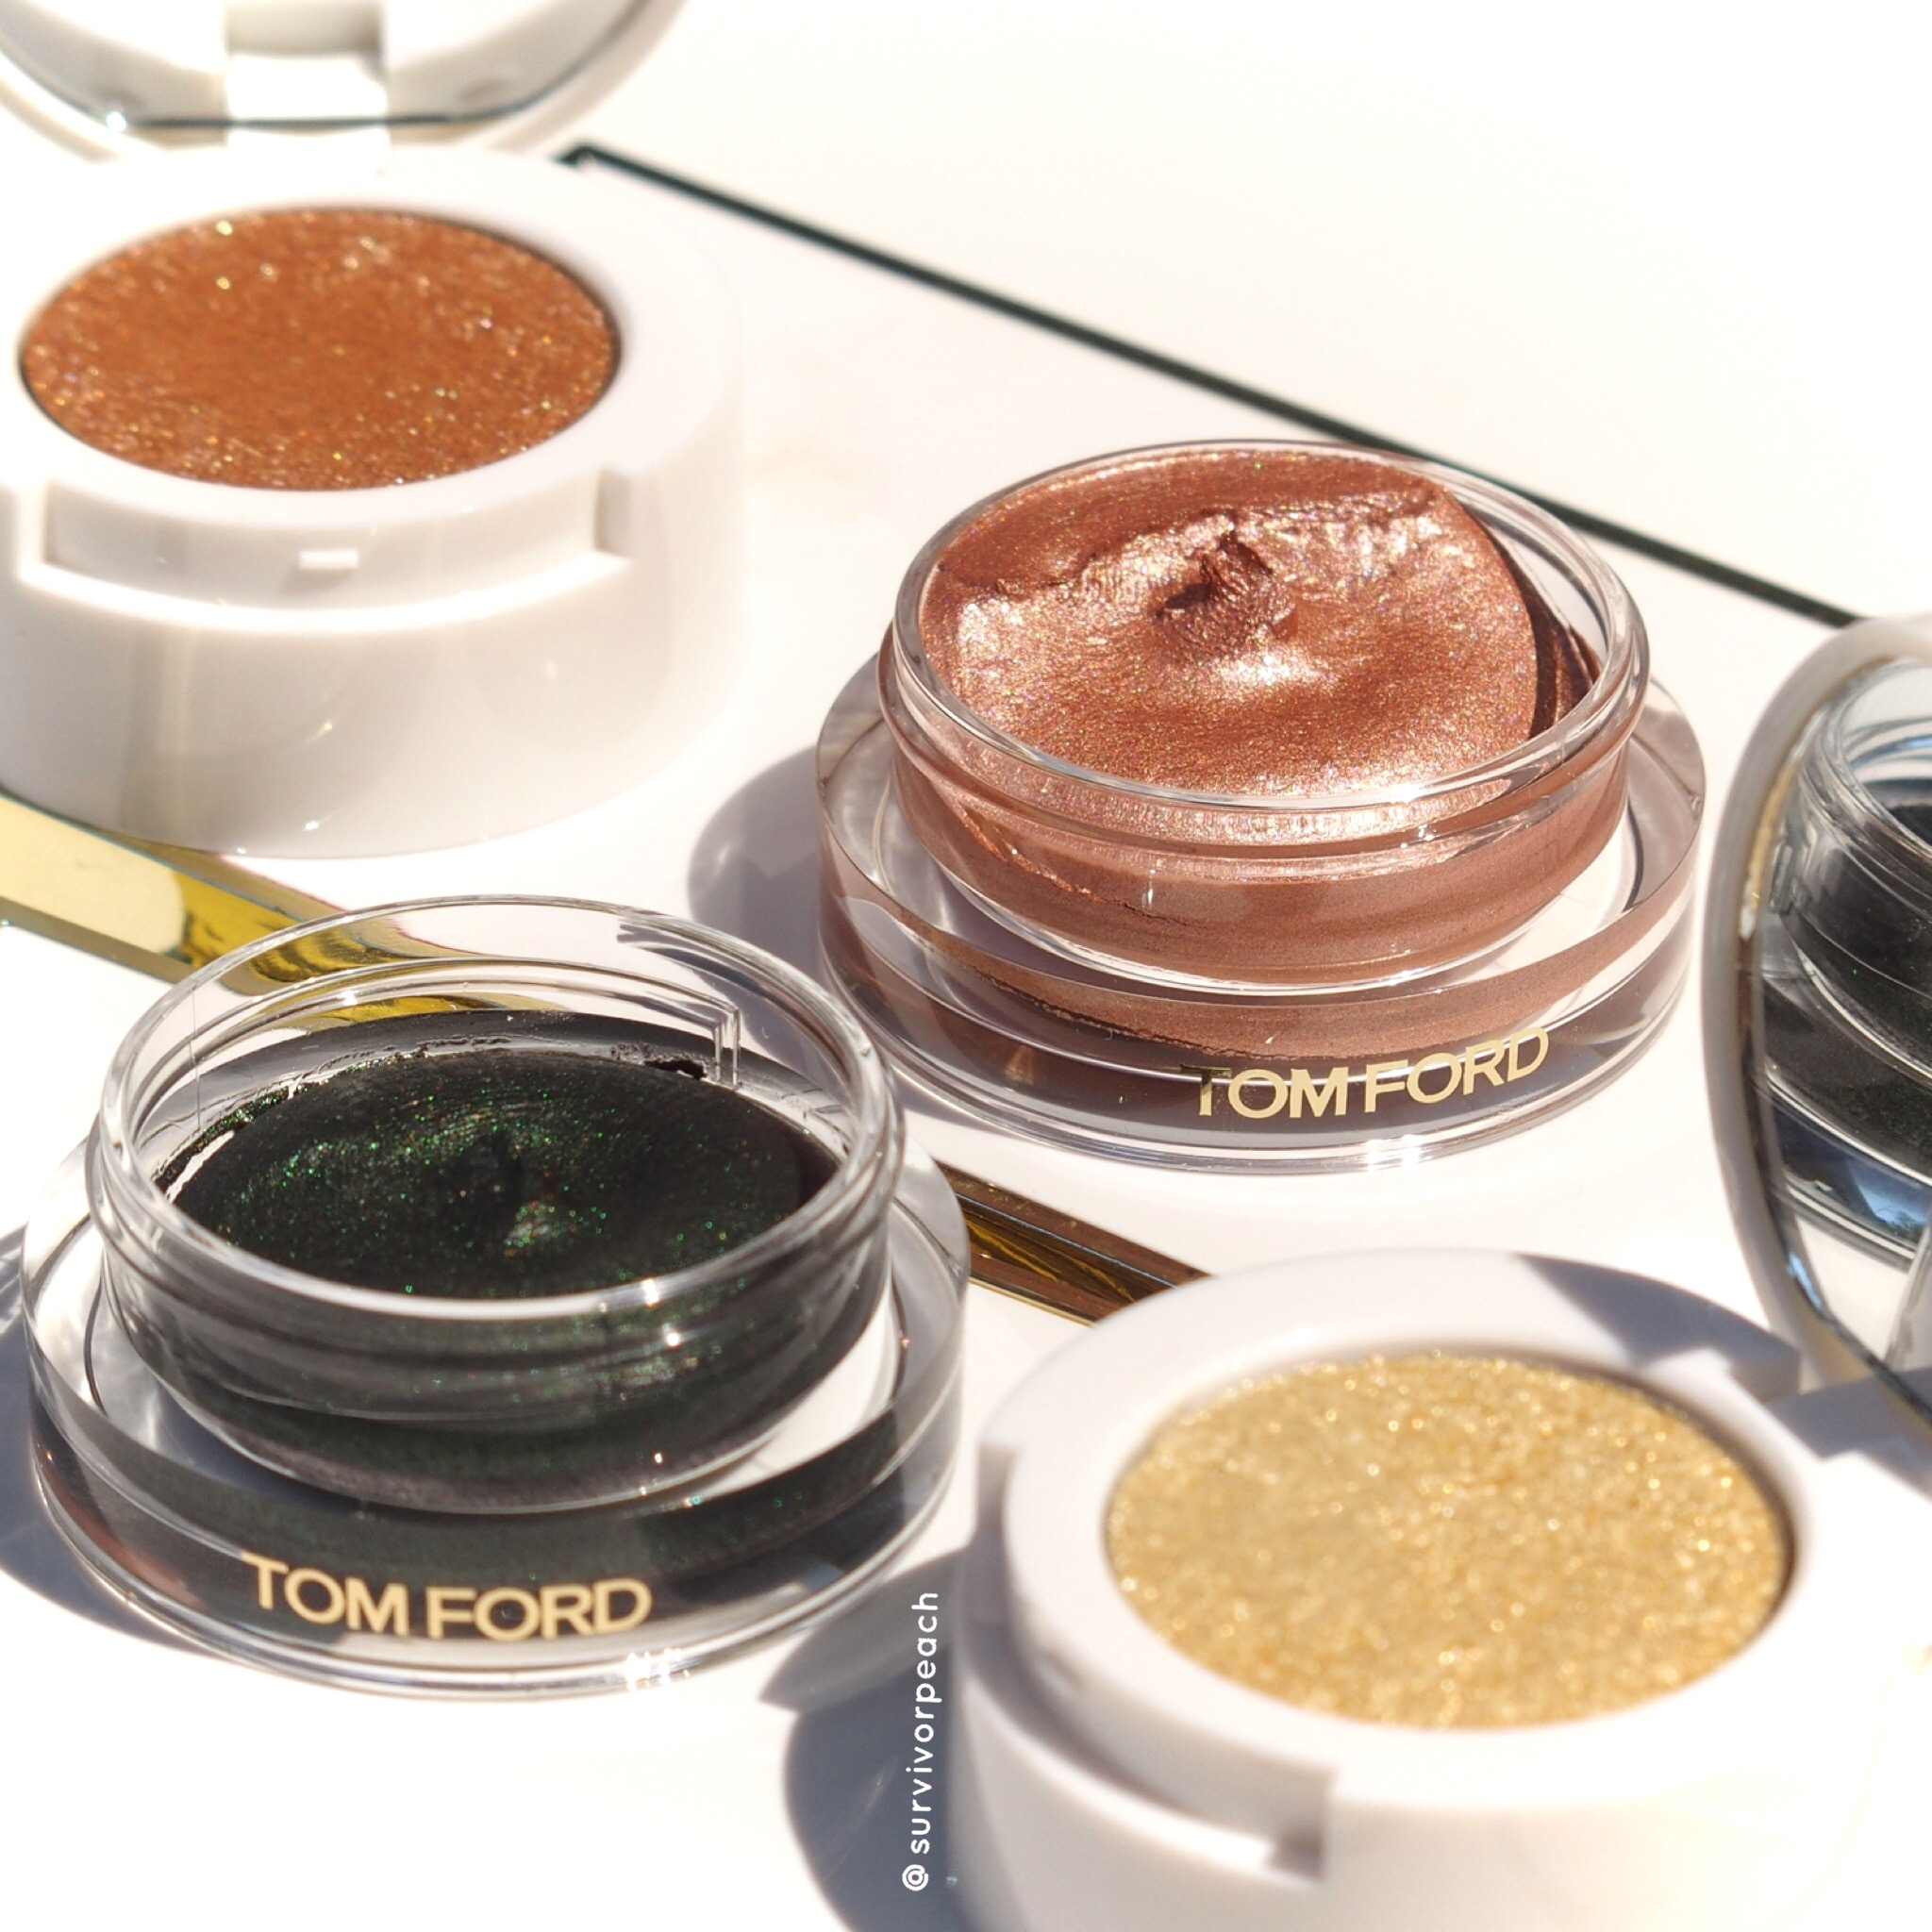 Tomford Cream to Powder eyeshadow duos